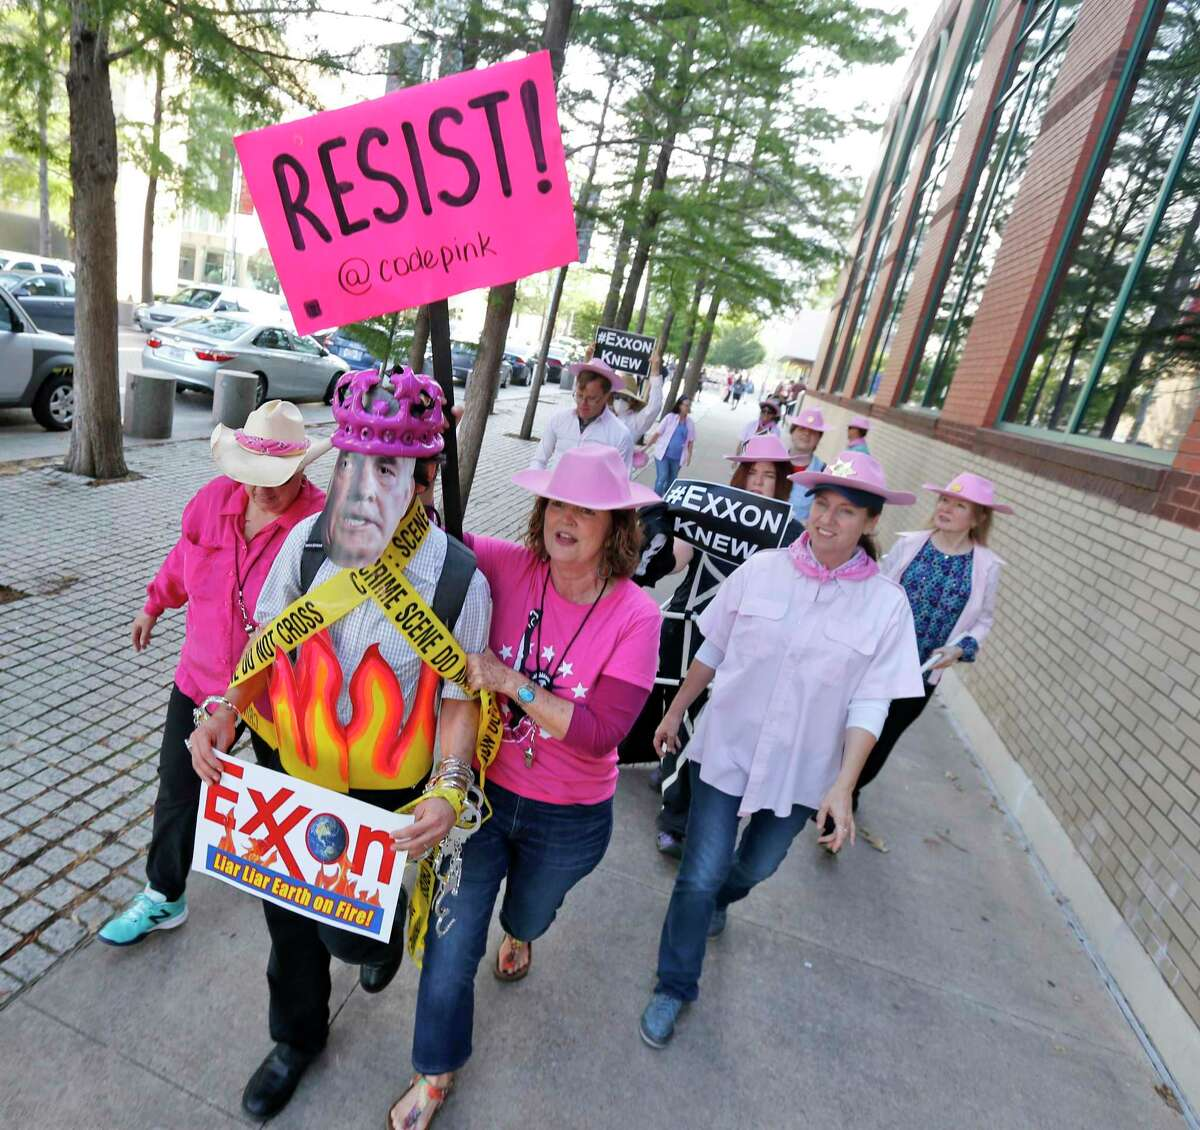 Members of Code Pink, led by Danna Miller Pyke, front with sign, picket and stage a mock arrest of Rex Tillerson, worn by Ernest Jones, as protesters gather outside of the Exxon shareholders meeting across the street from the Morton H. Meyerson Symphony Center in Dallas.